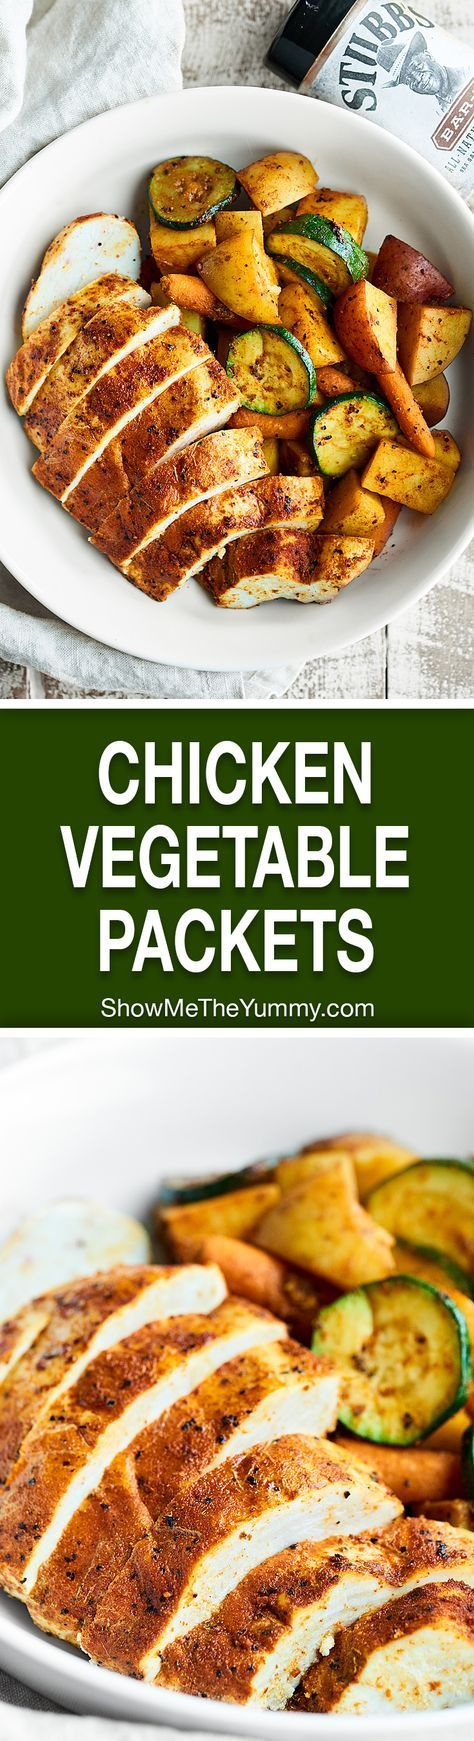 These Chicken And Vegetable Foil Packets Are Perfect For Easy, Healthy,  Weeknight Dinners! Full Of Bbq Chicken, Zucchini, Carrots, & Potatoes  @stubbsbbq